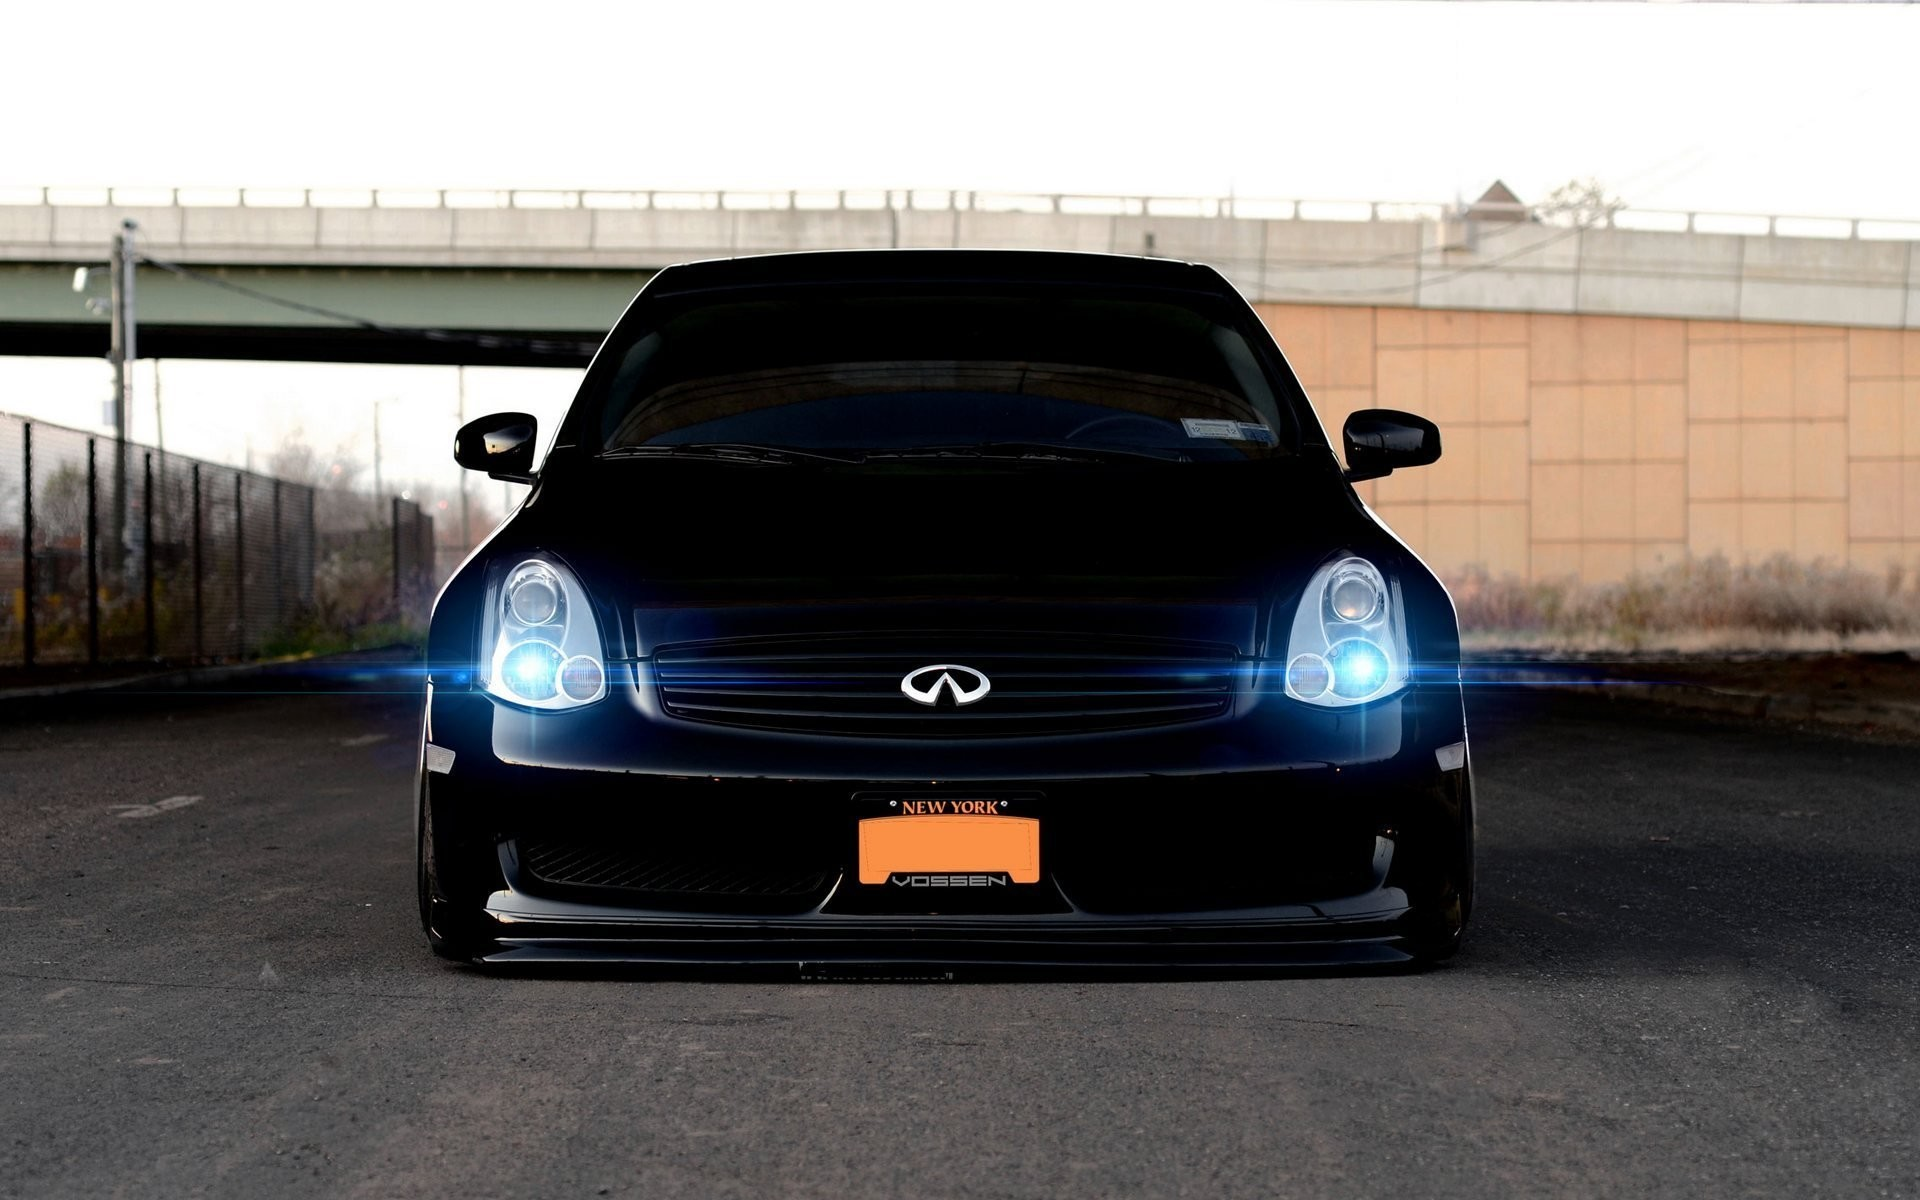 1920x1200 Car Wallpapers Black Infiniti G35 Tuning Vossen Vehicles  Wallpapers Black Infinity Tuning Vossen Front Beautiful